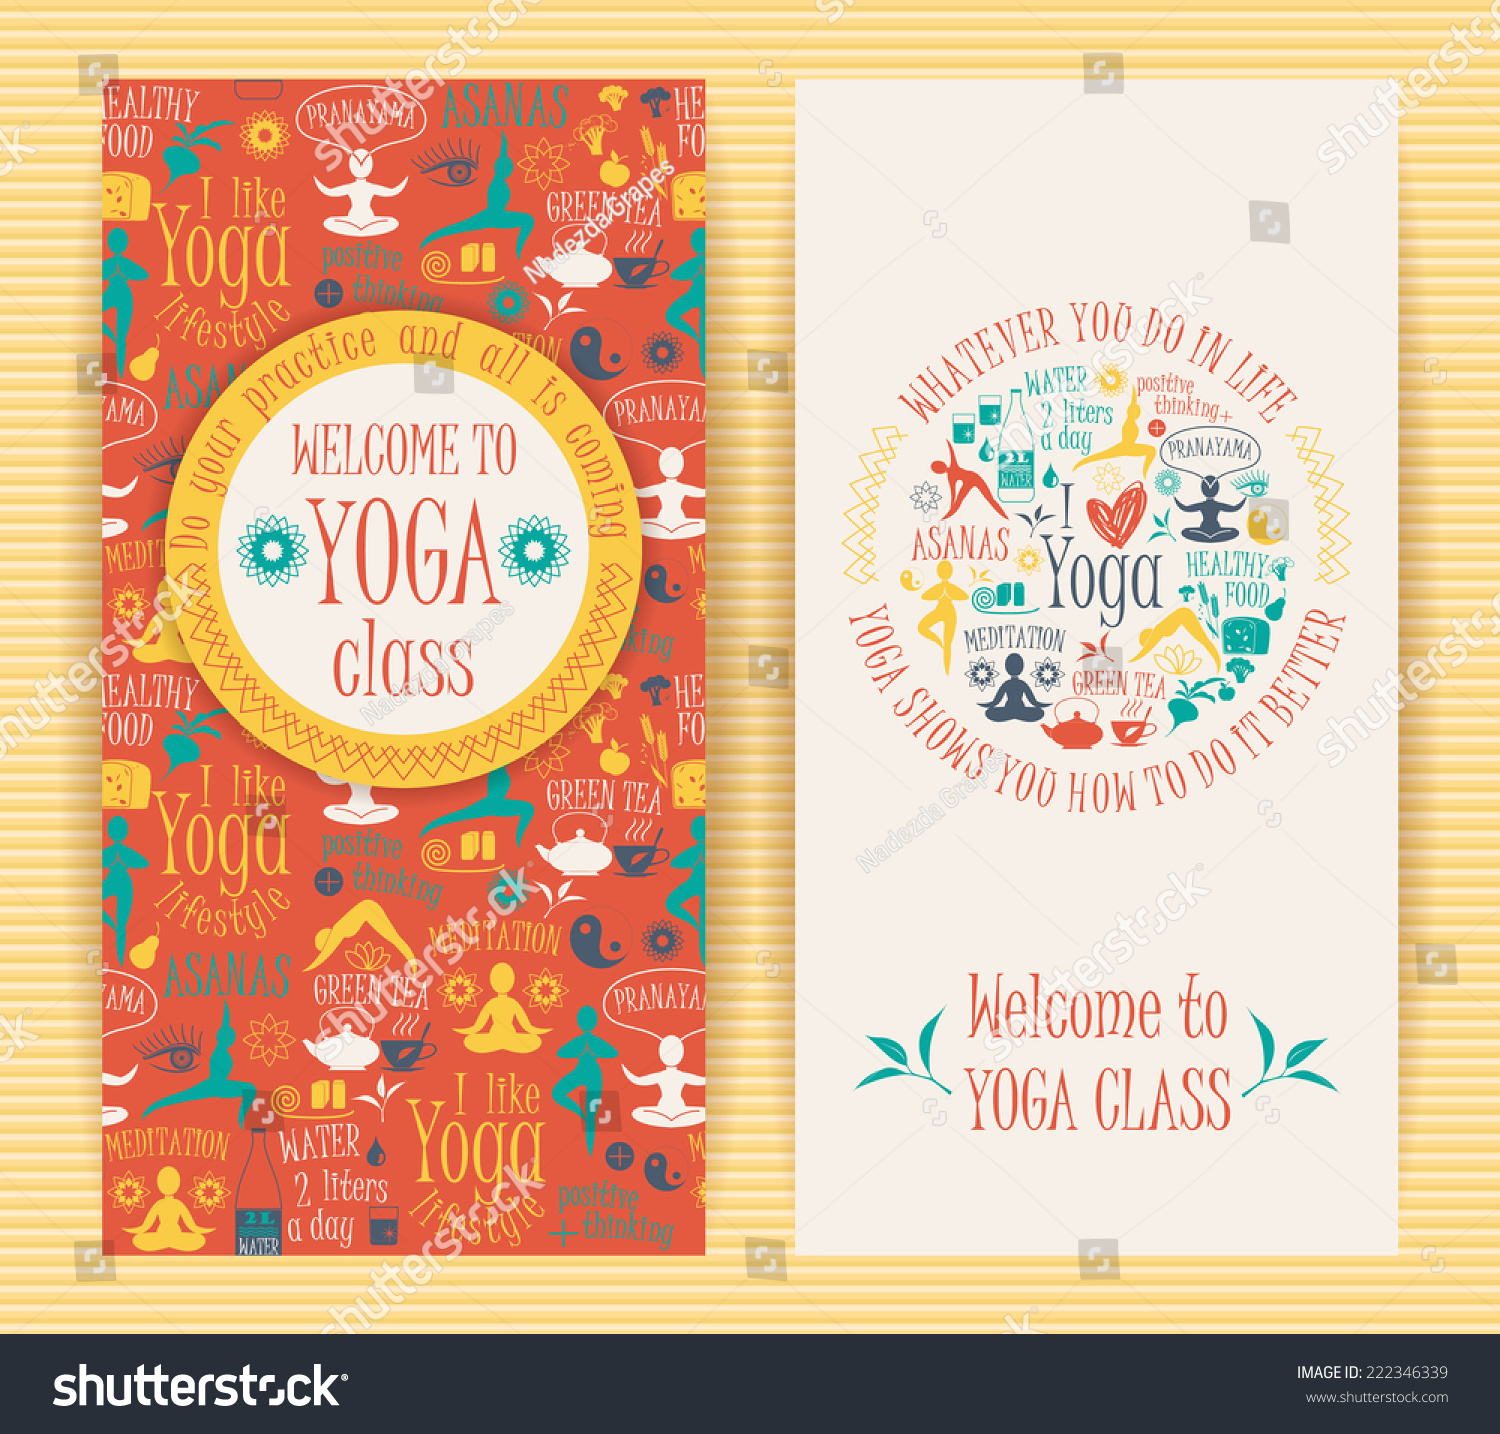 Flyers Yogic Quotes Yoga Class Vector Pattern Stock Vector Royalty